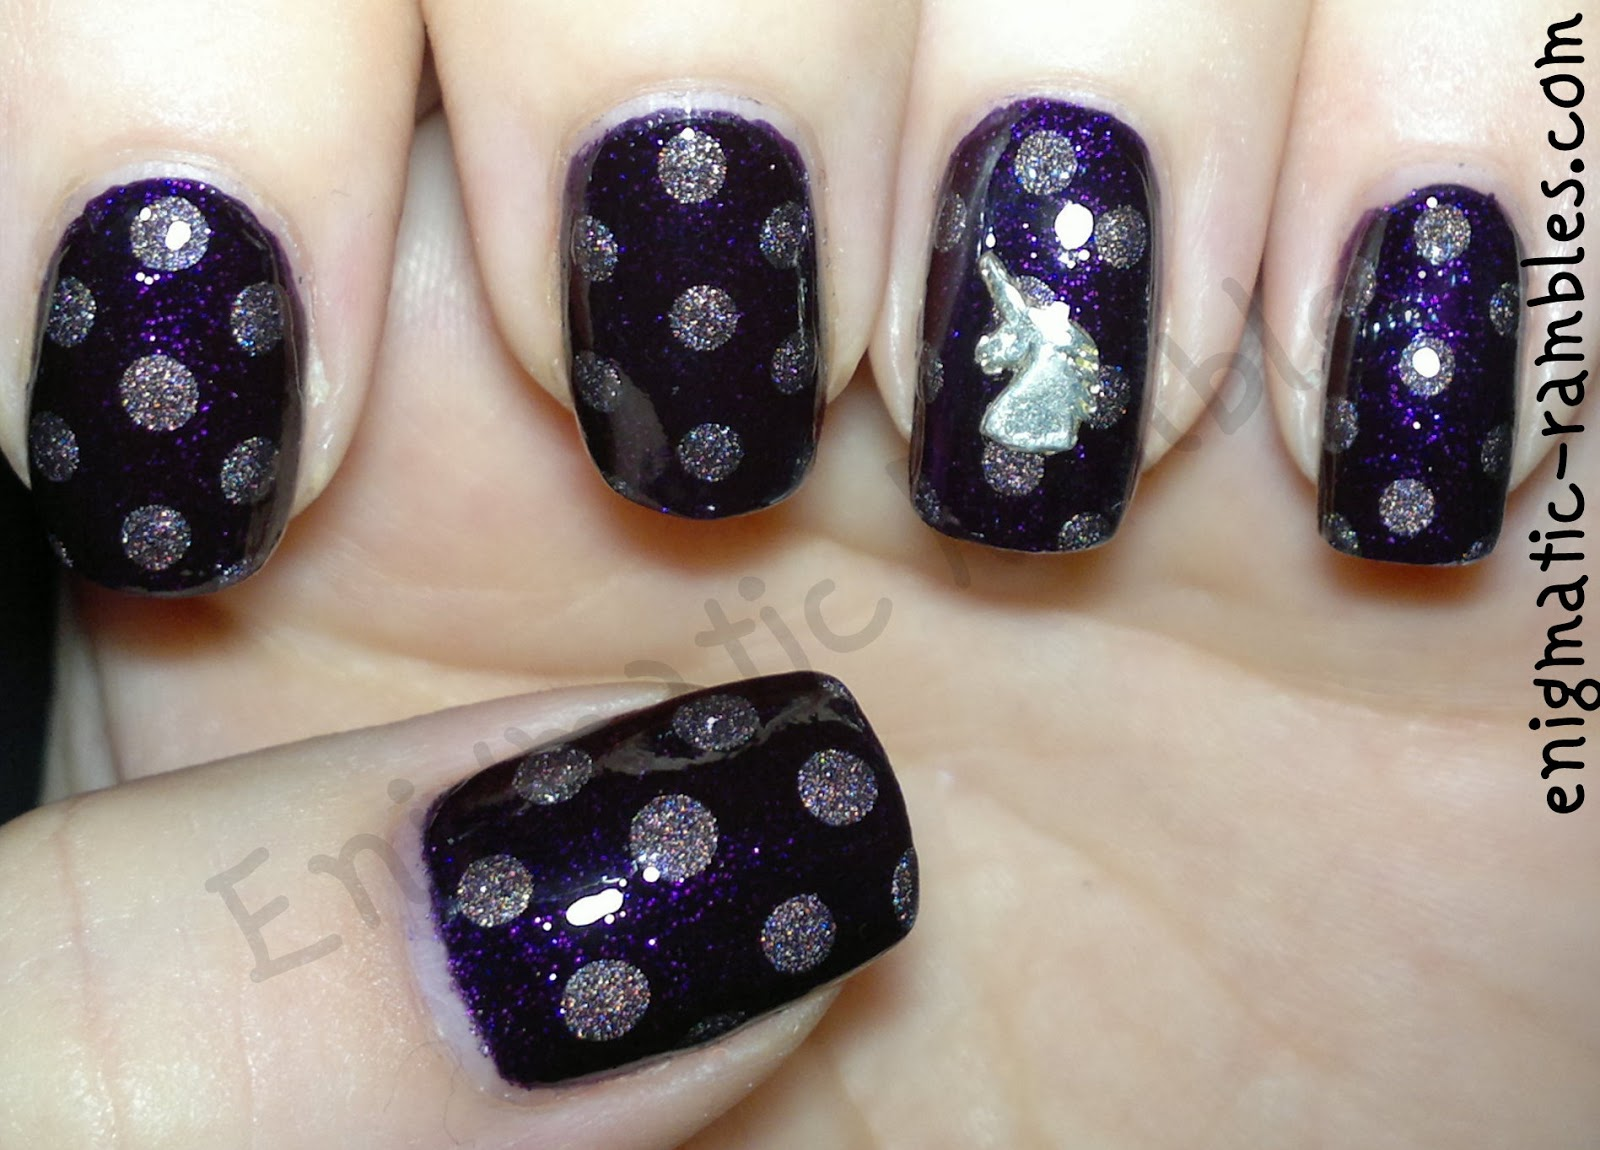 nails-nail-art-dotticure-dots-dot-dotting-tool-inc-bow-street-a-england-sleeping-palace-unicorn